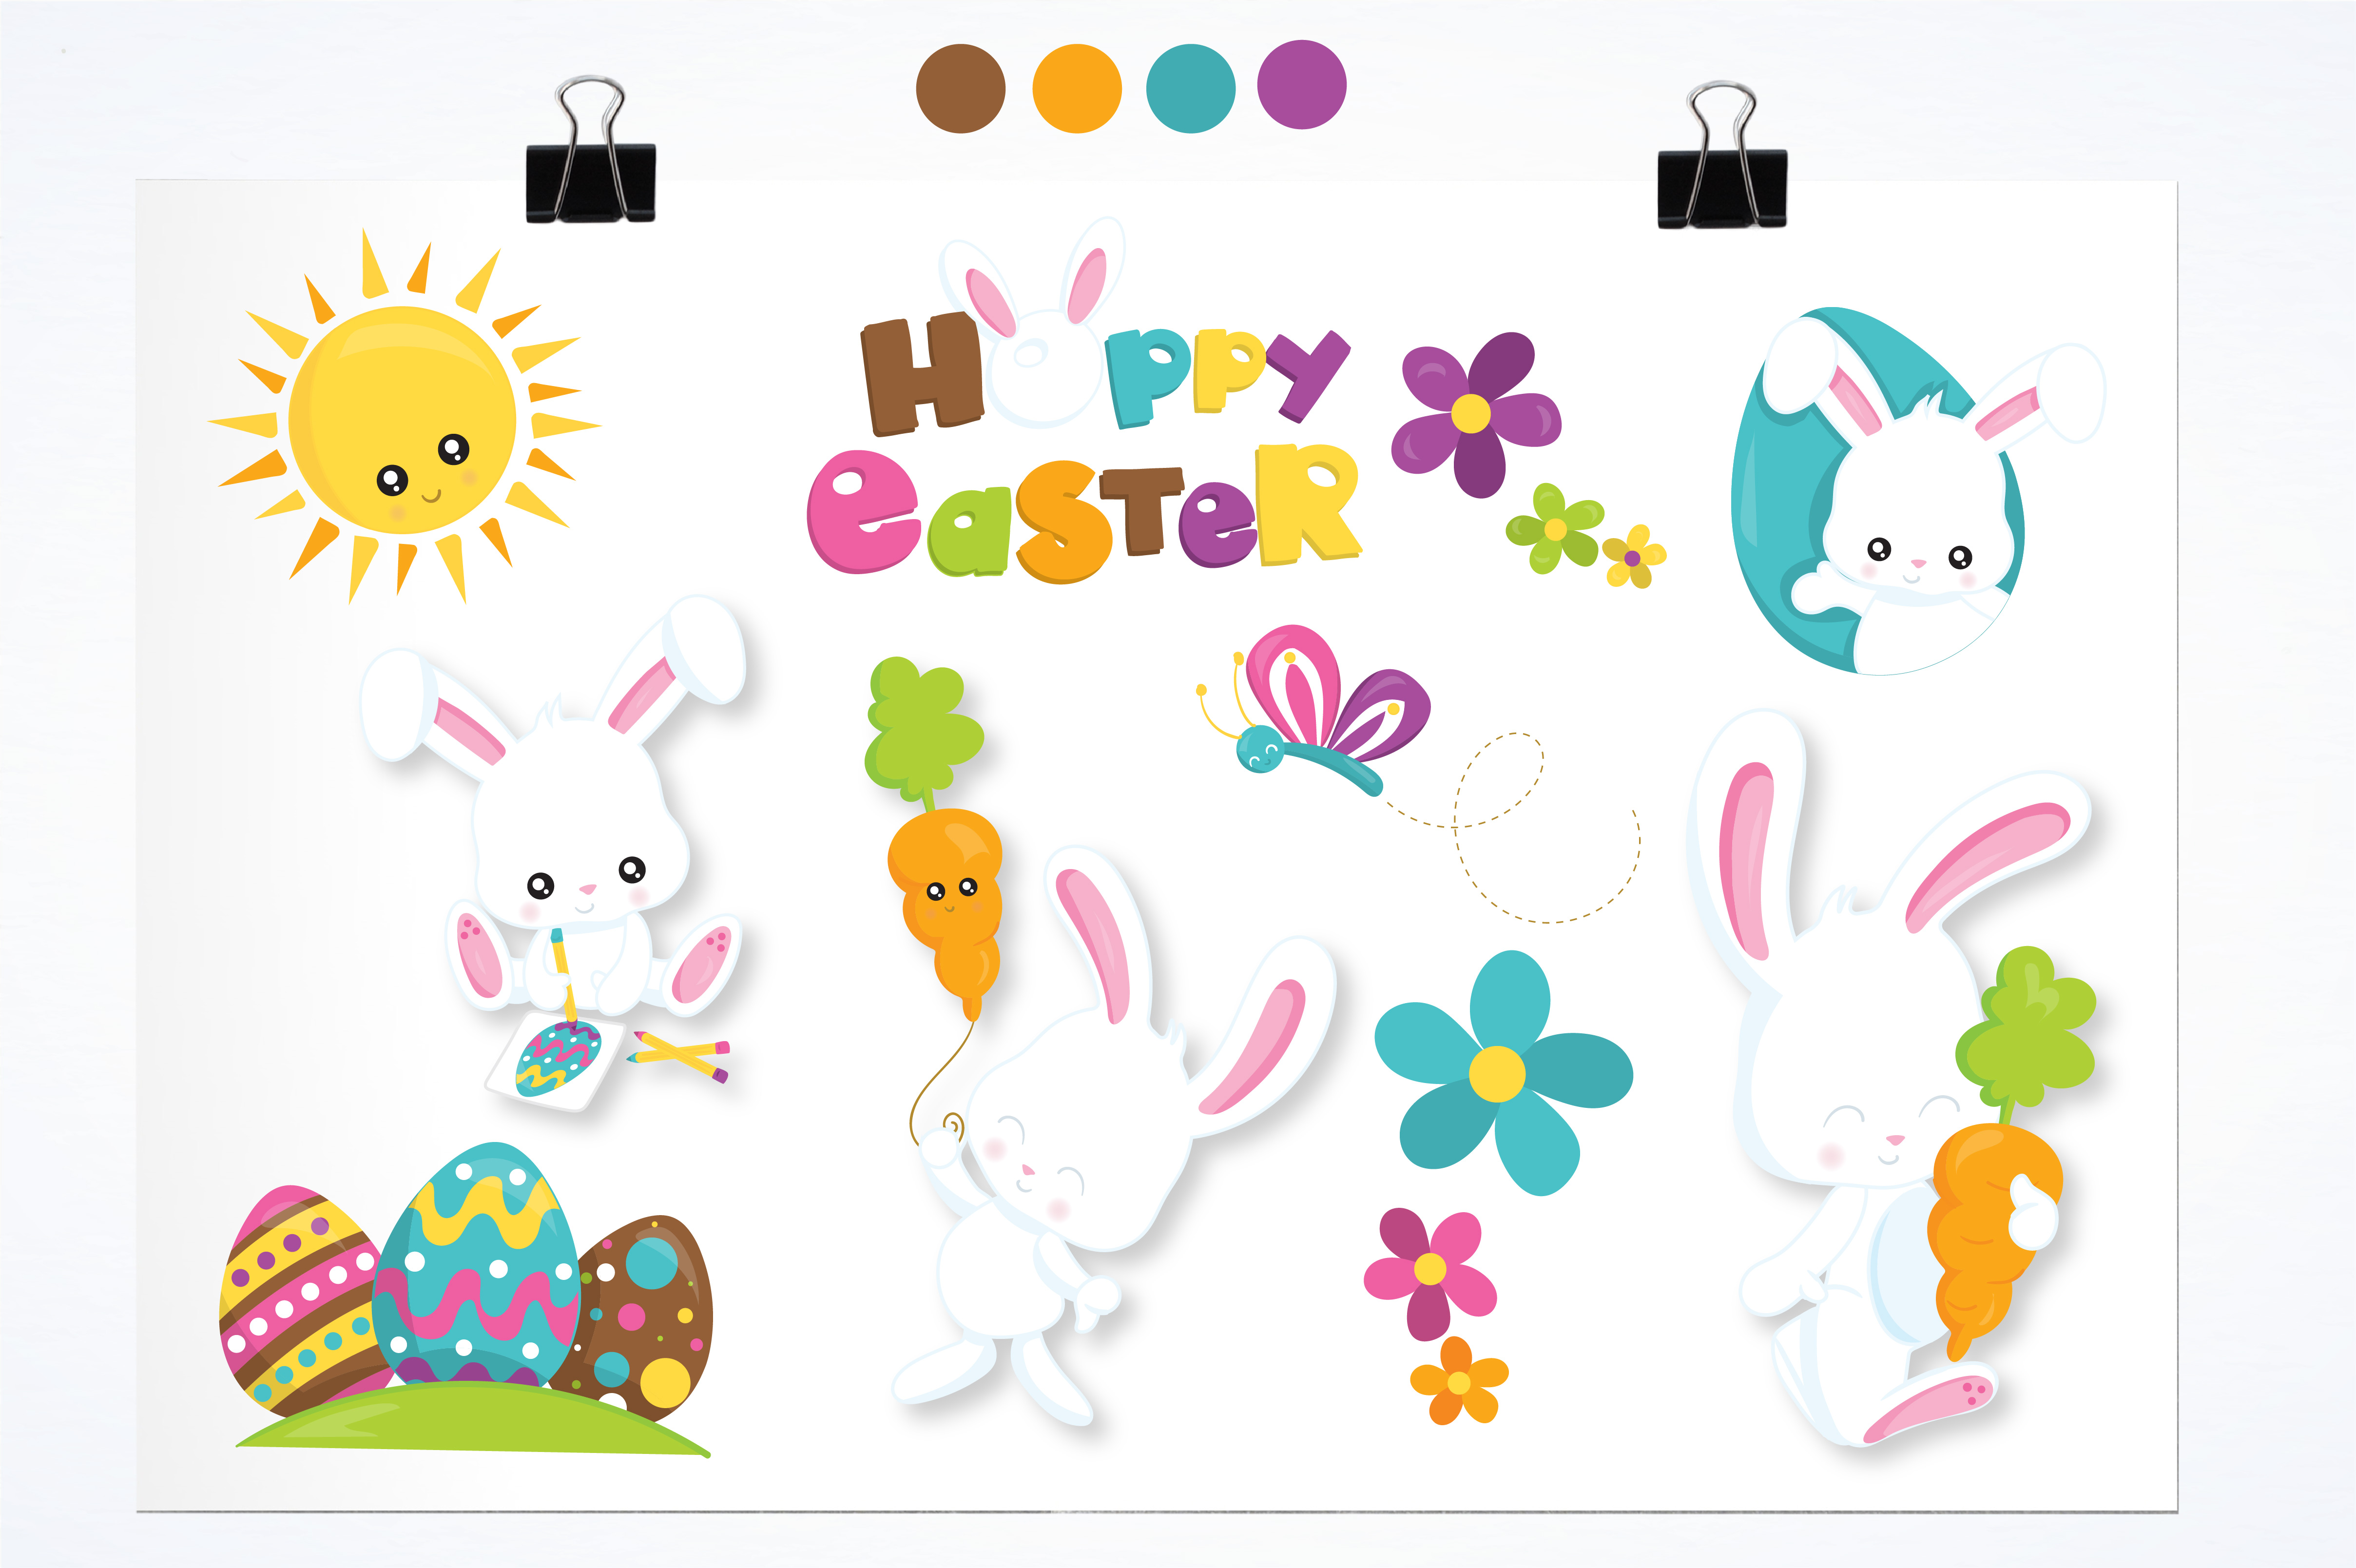 Download Free Easter Bunny Graphic By Prettygrafik Creative Fabrica for Cricut Explore, Silhouette and other cutting machines.